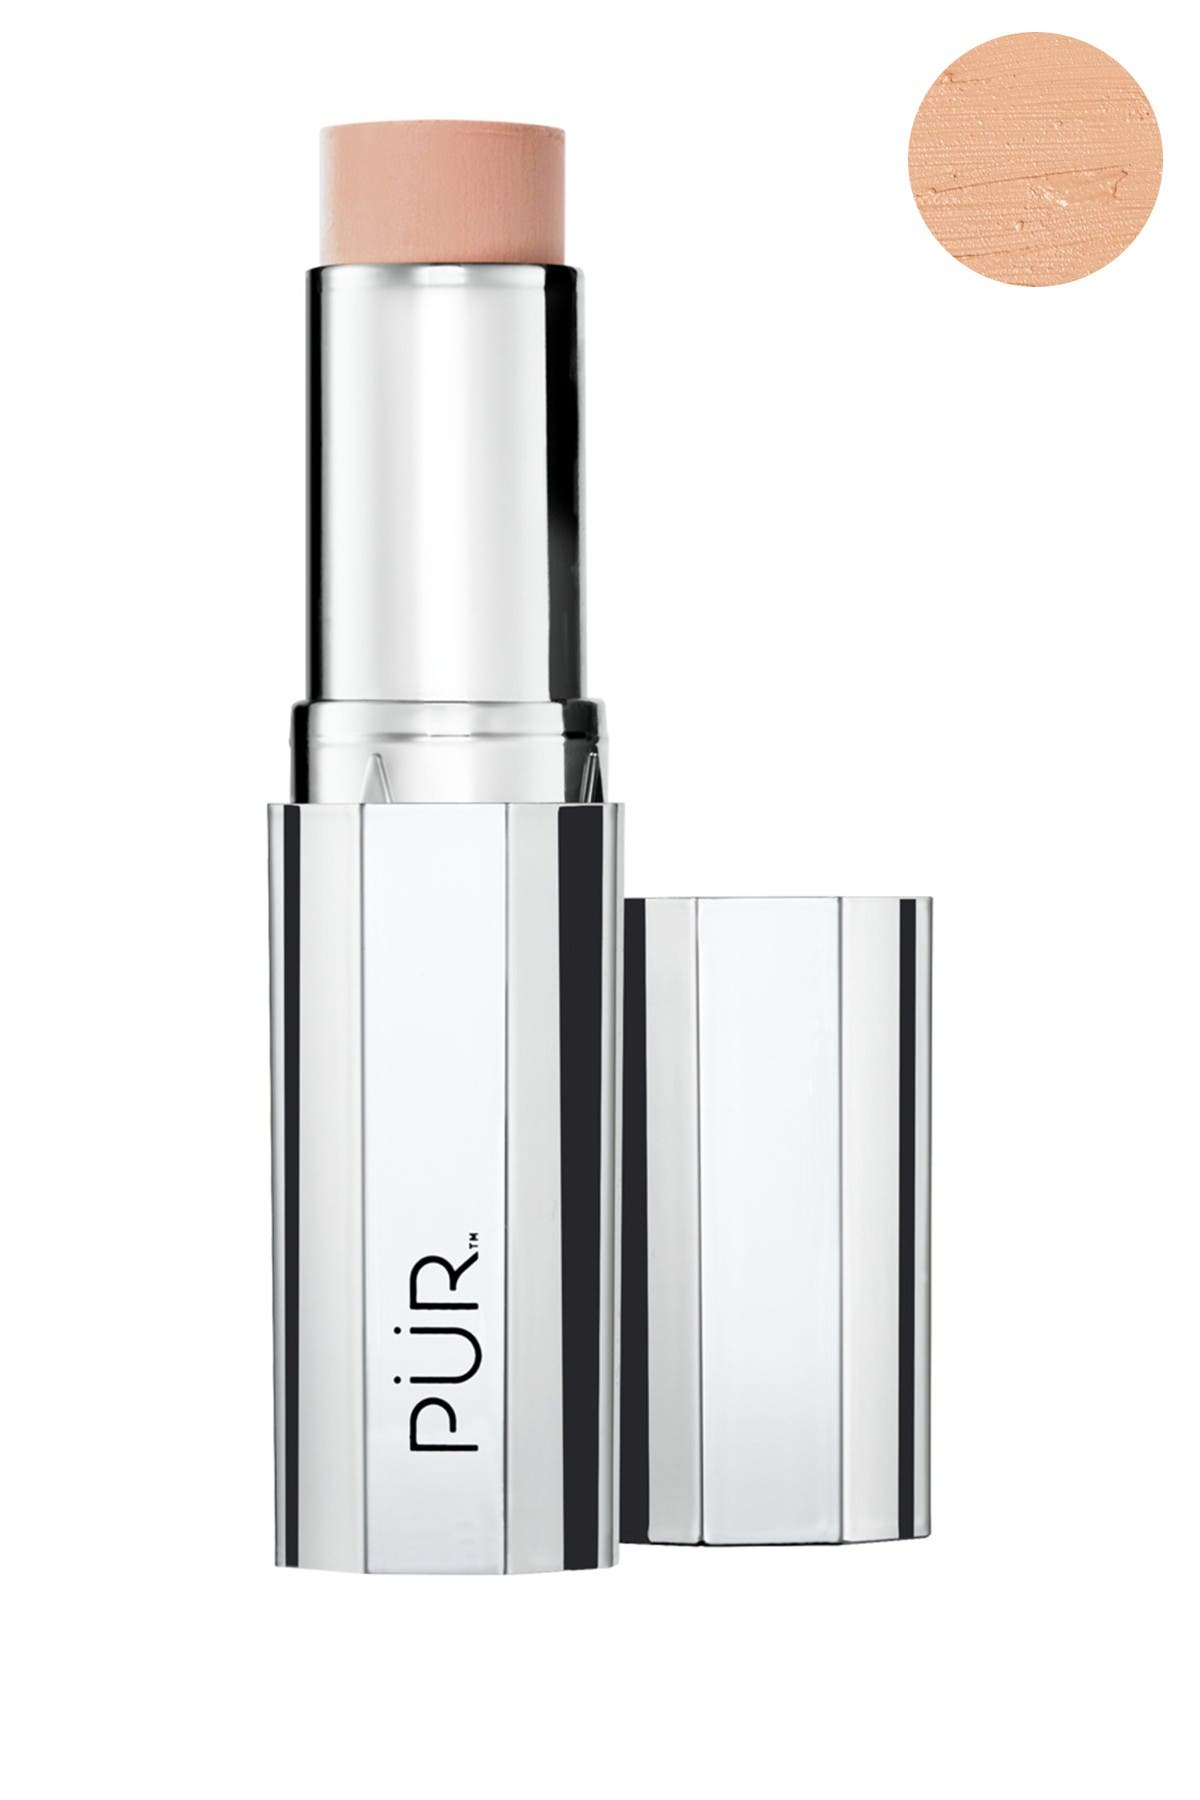 Image of PUR Cosmetics 4-in-1 Foundation Stick - Blush Medium